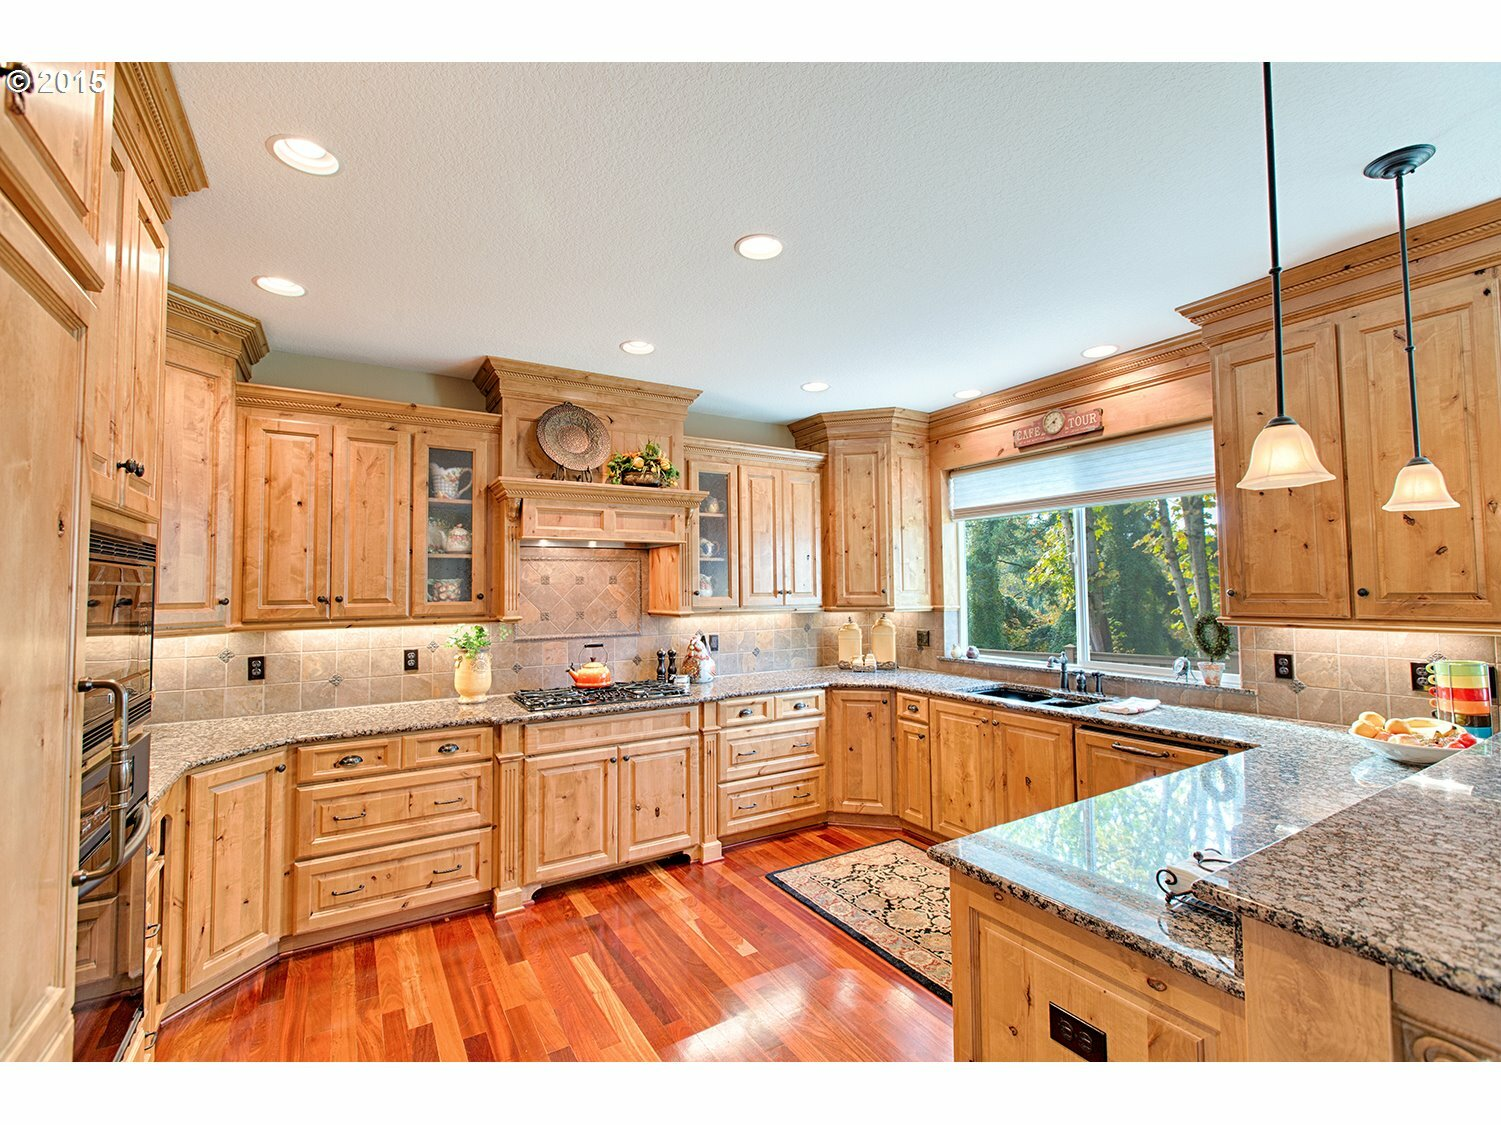 935 N Alder St, Canby, OR - USA (photo 4)